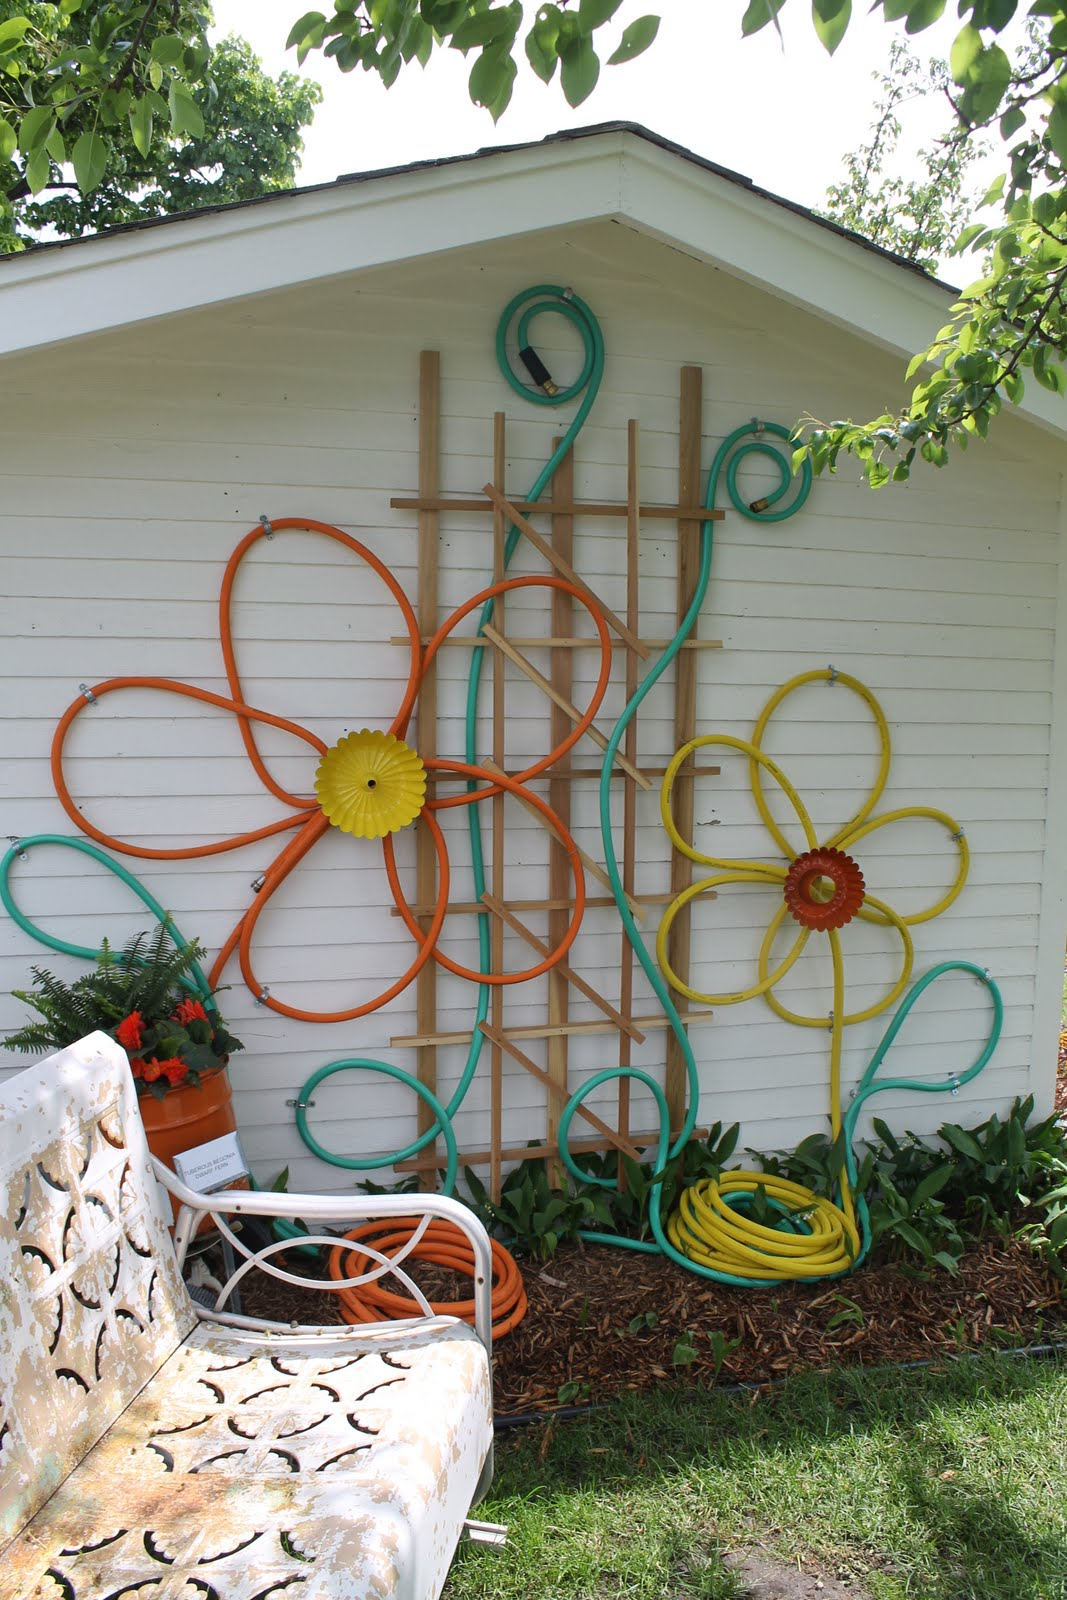 How To Beautify Your House - Outdoor Wall Décor Ideas on Backyard Wall Decor Ideas  id=23429